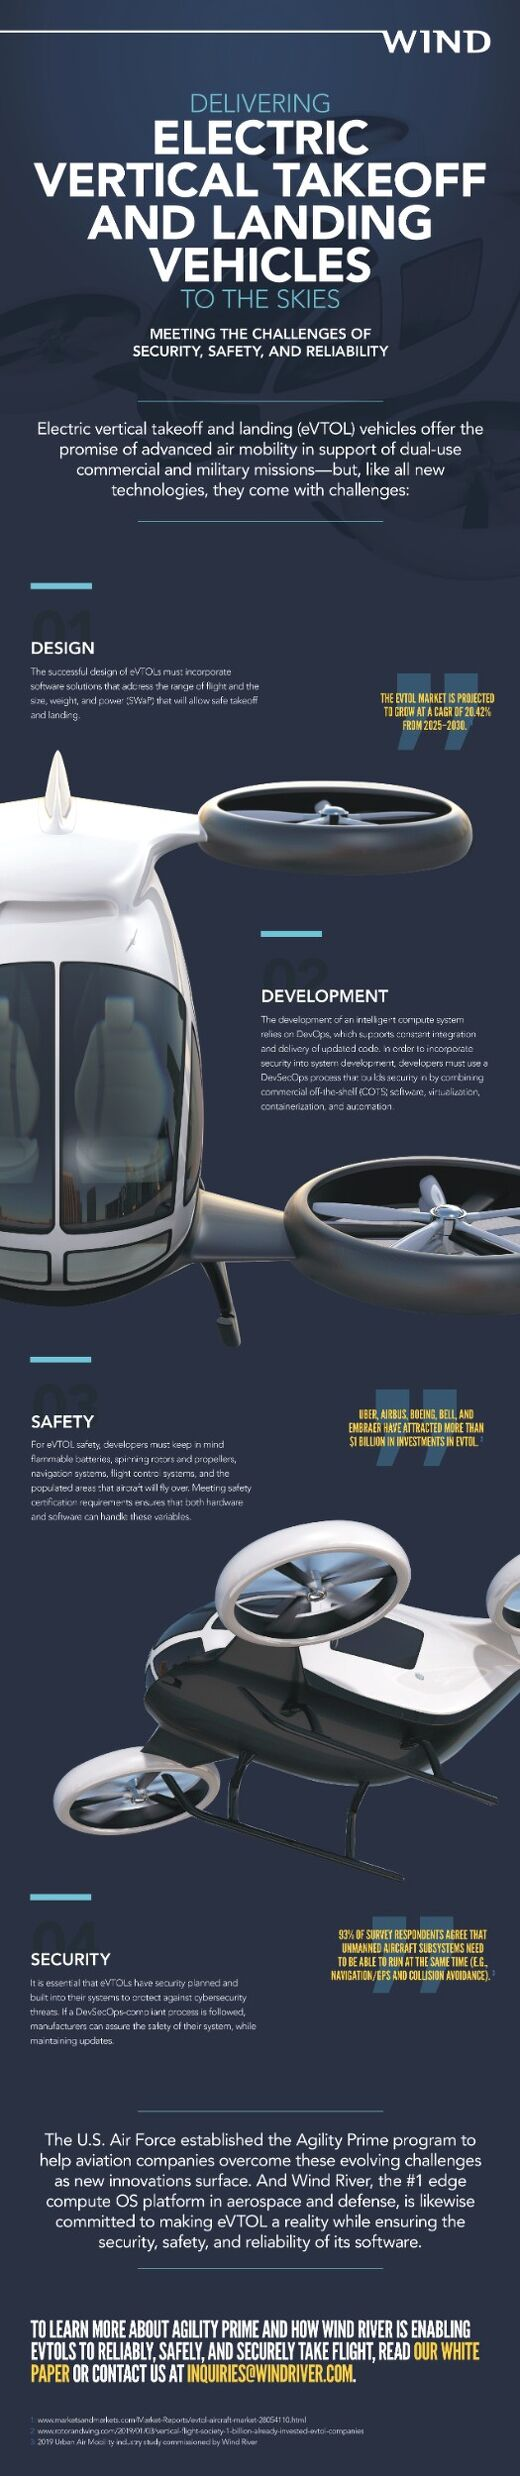 Delivering Electric Vertical Takeoff and Landing Vehicles to the Skies